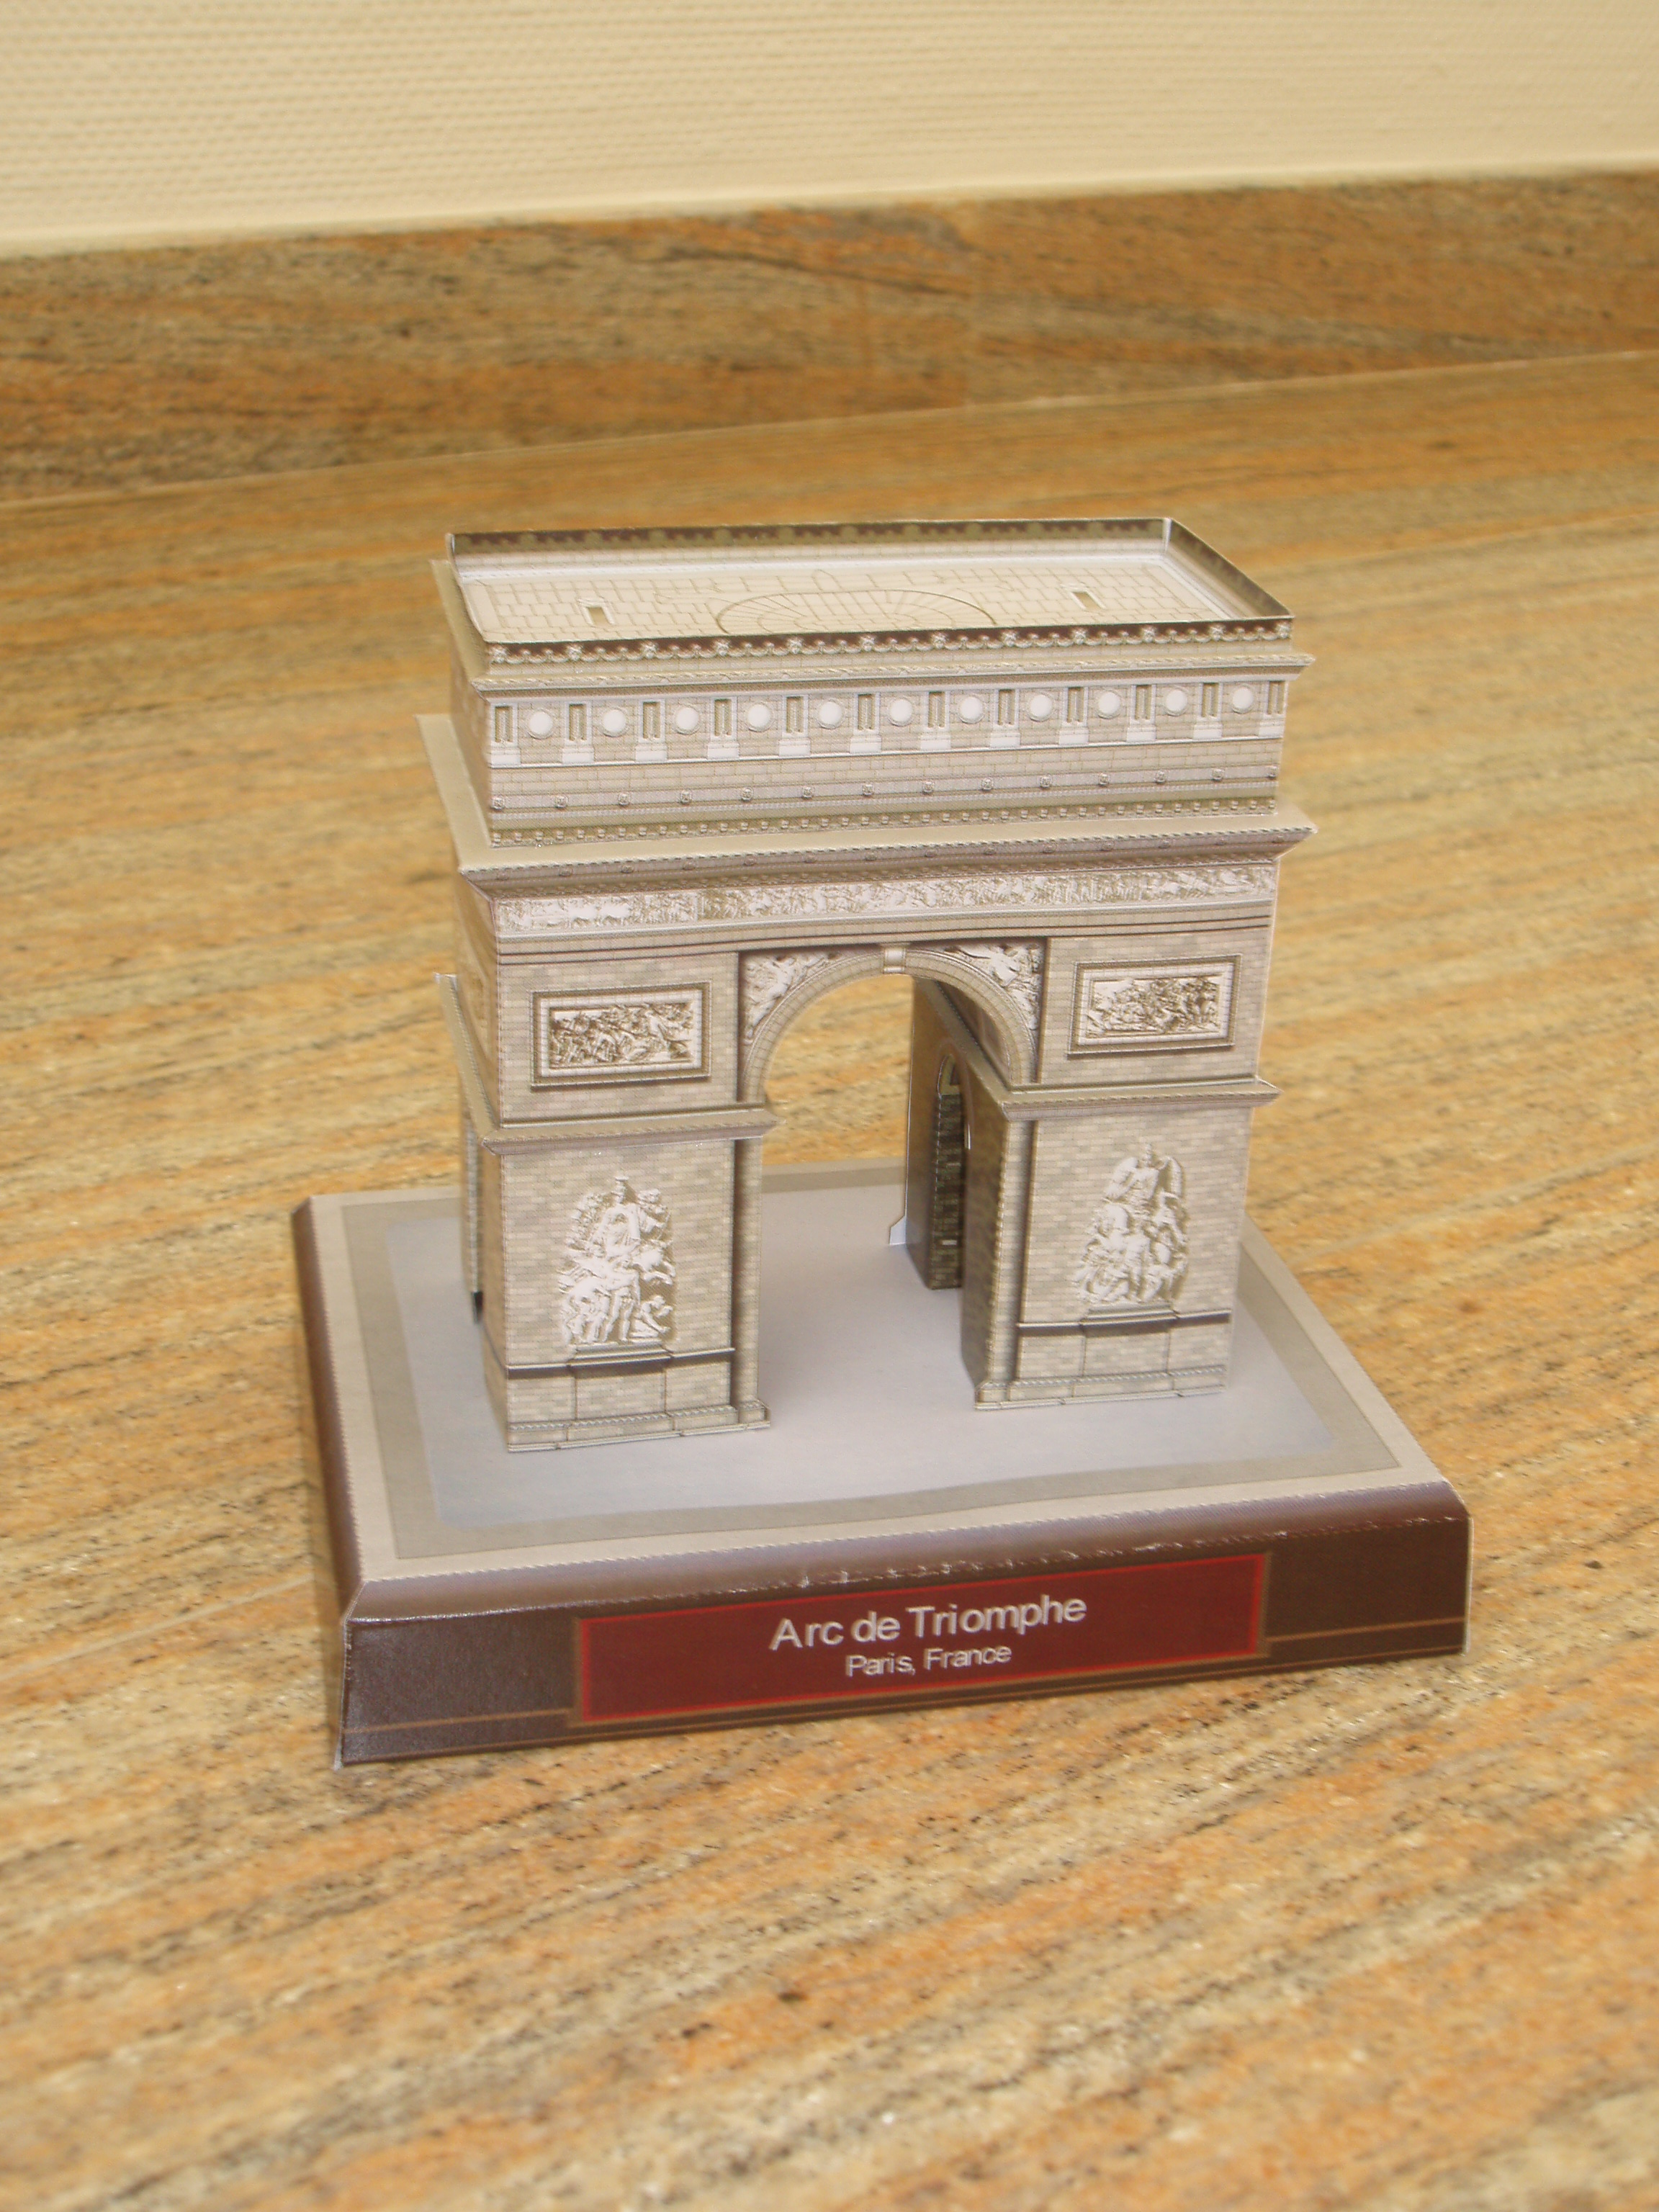 Arco del Triunfo - Recortable papercraft. - Manualidades a Raudales